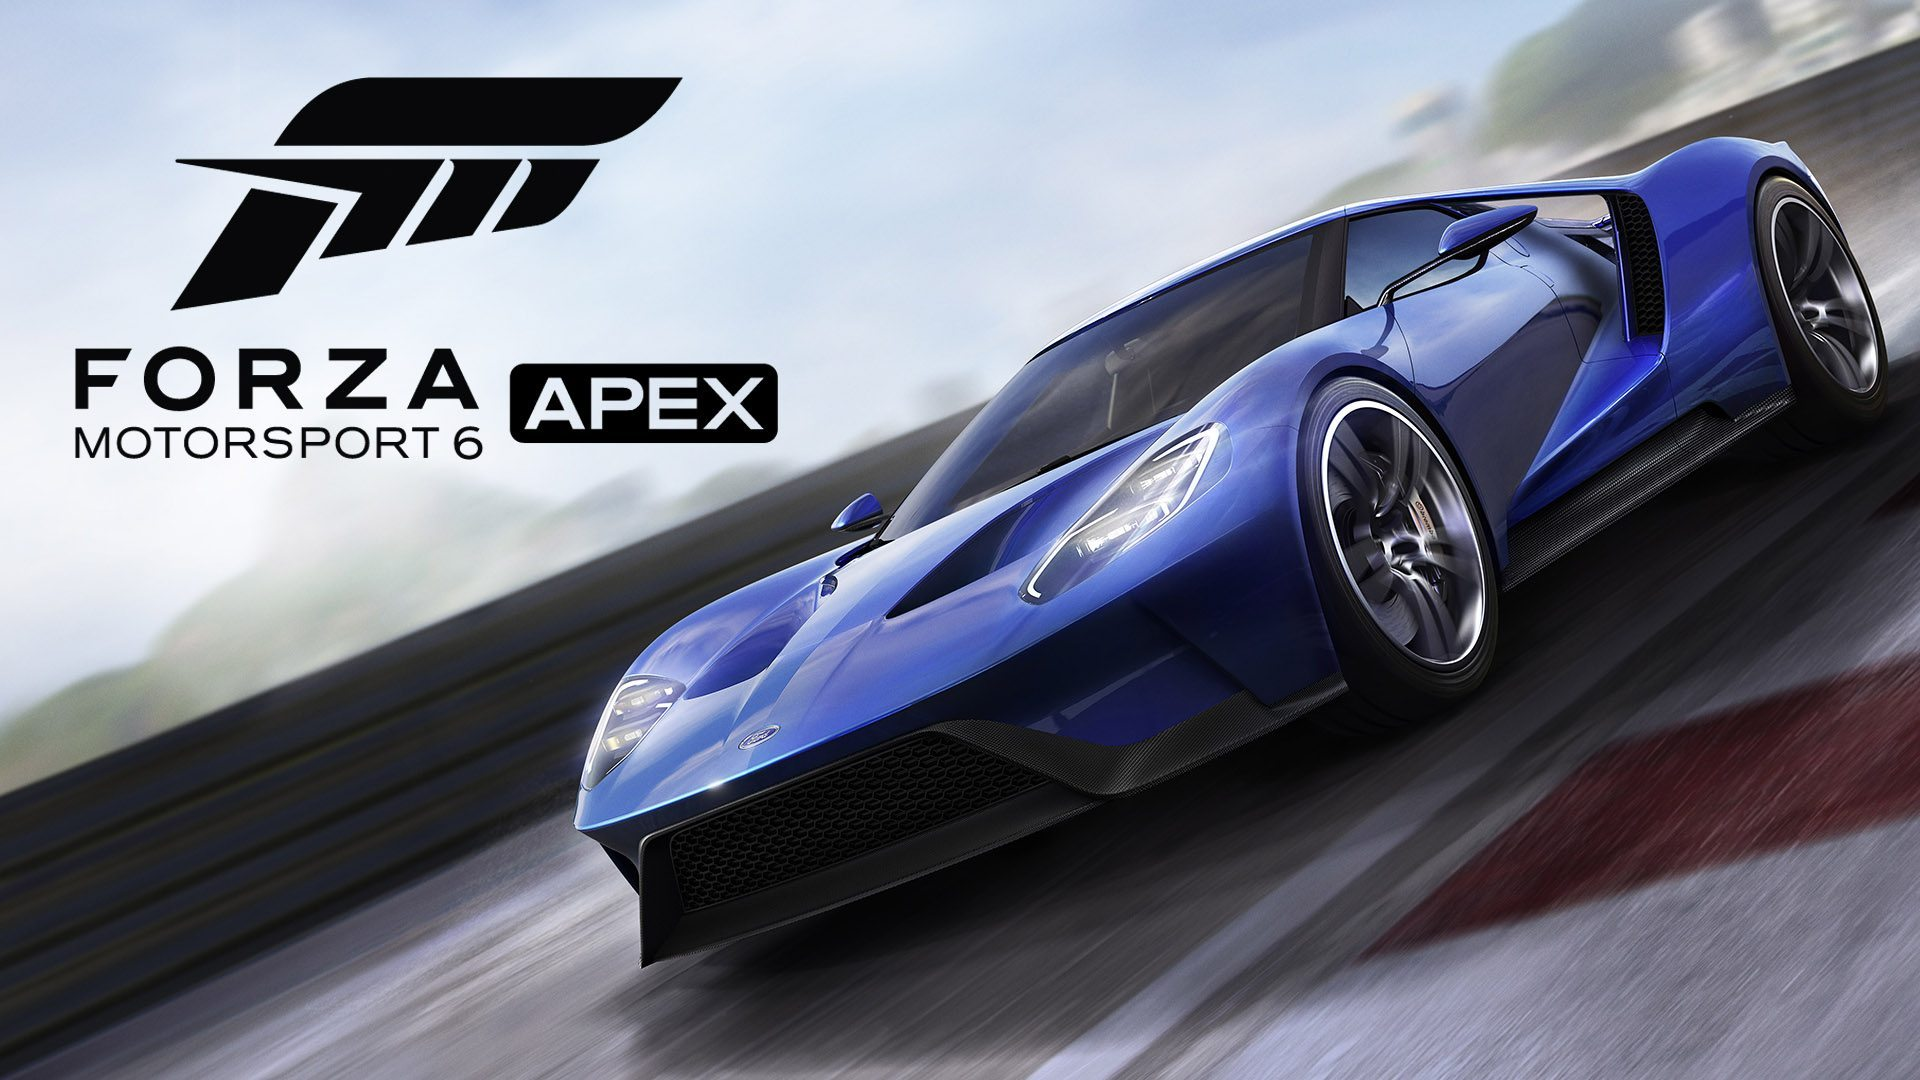 Forza Motorsport 6: Apex visual ID